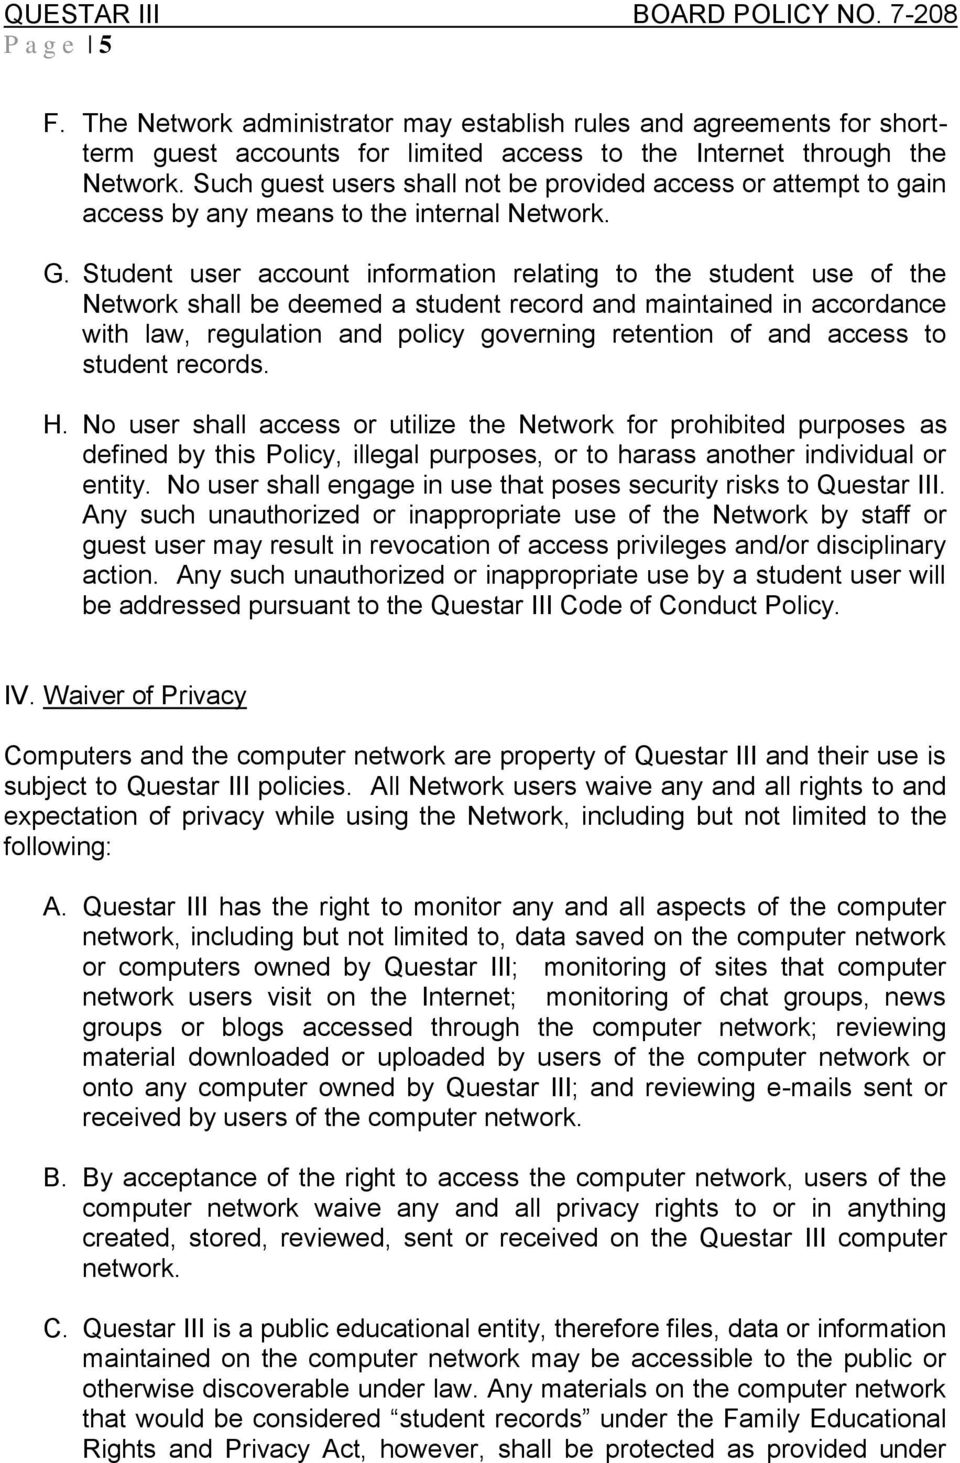 Student user account information relating to the student use of the Network shall be deemed a student record and maintained in accordance with law, regulation and policy governing retention of and